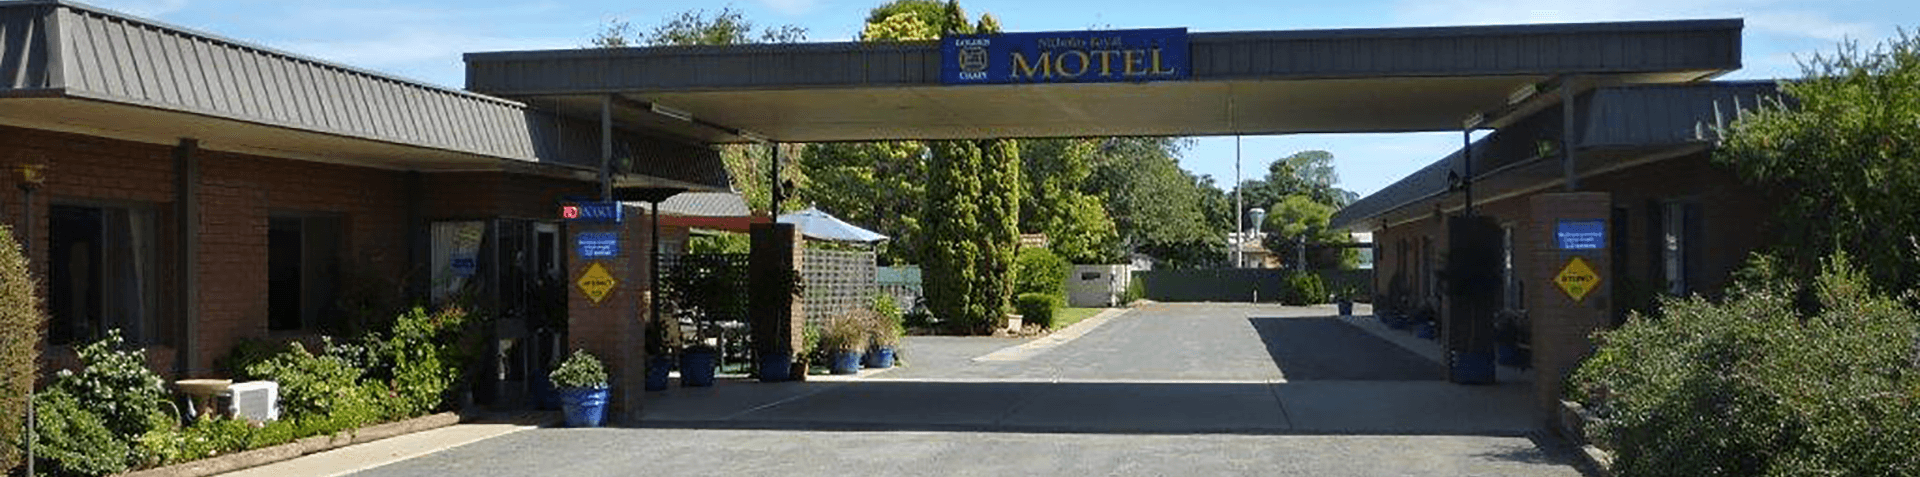 Main Entrance - Nicholas Royal Motel - Hay NSW